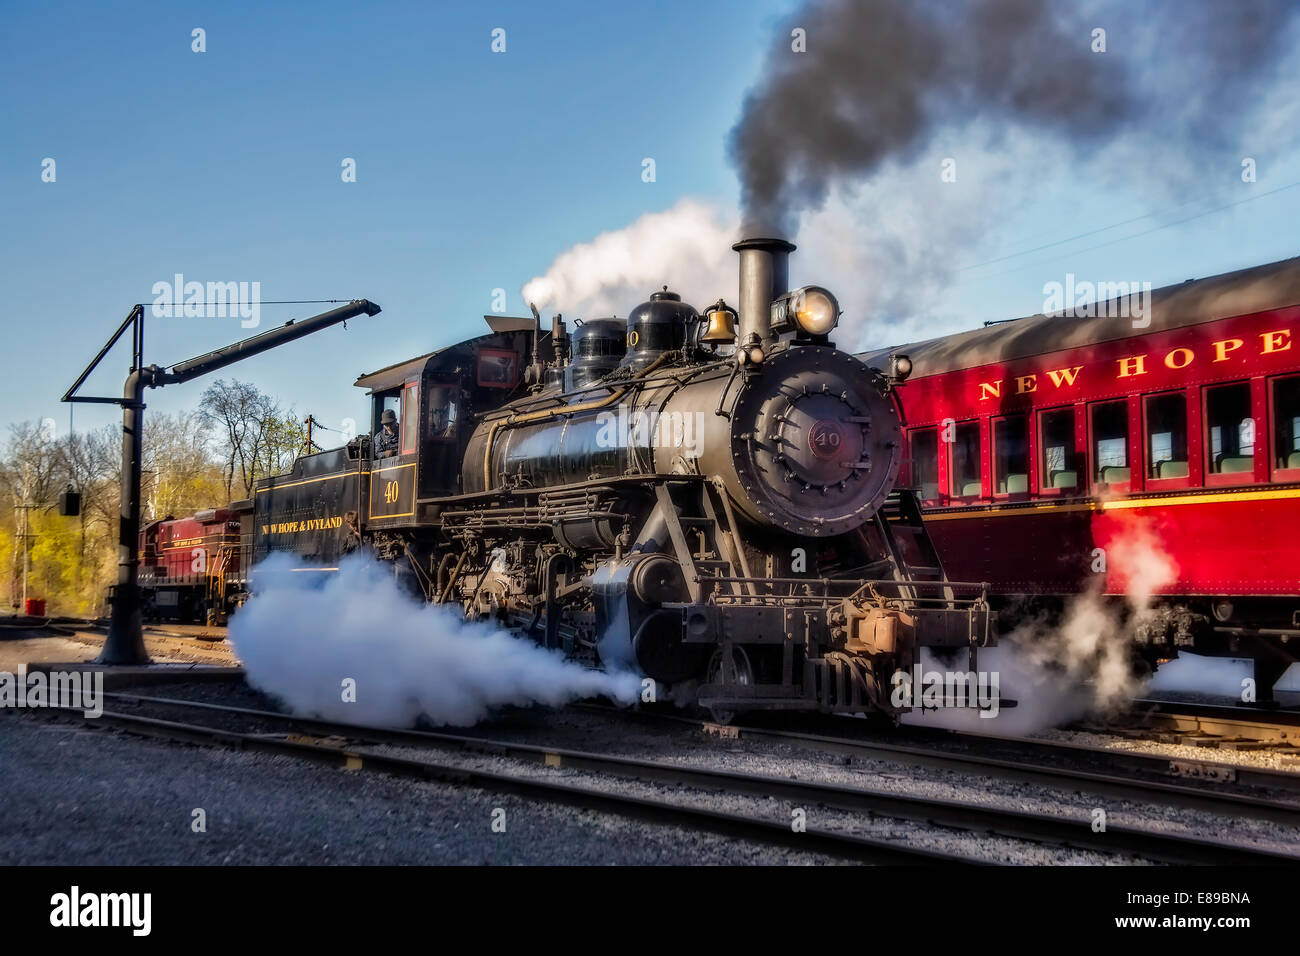 Antique Steam Train at the New Hope, PA train station Stock Photo ...